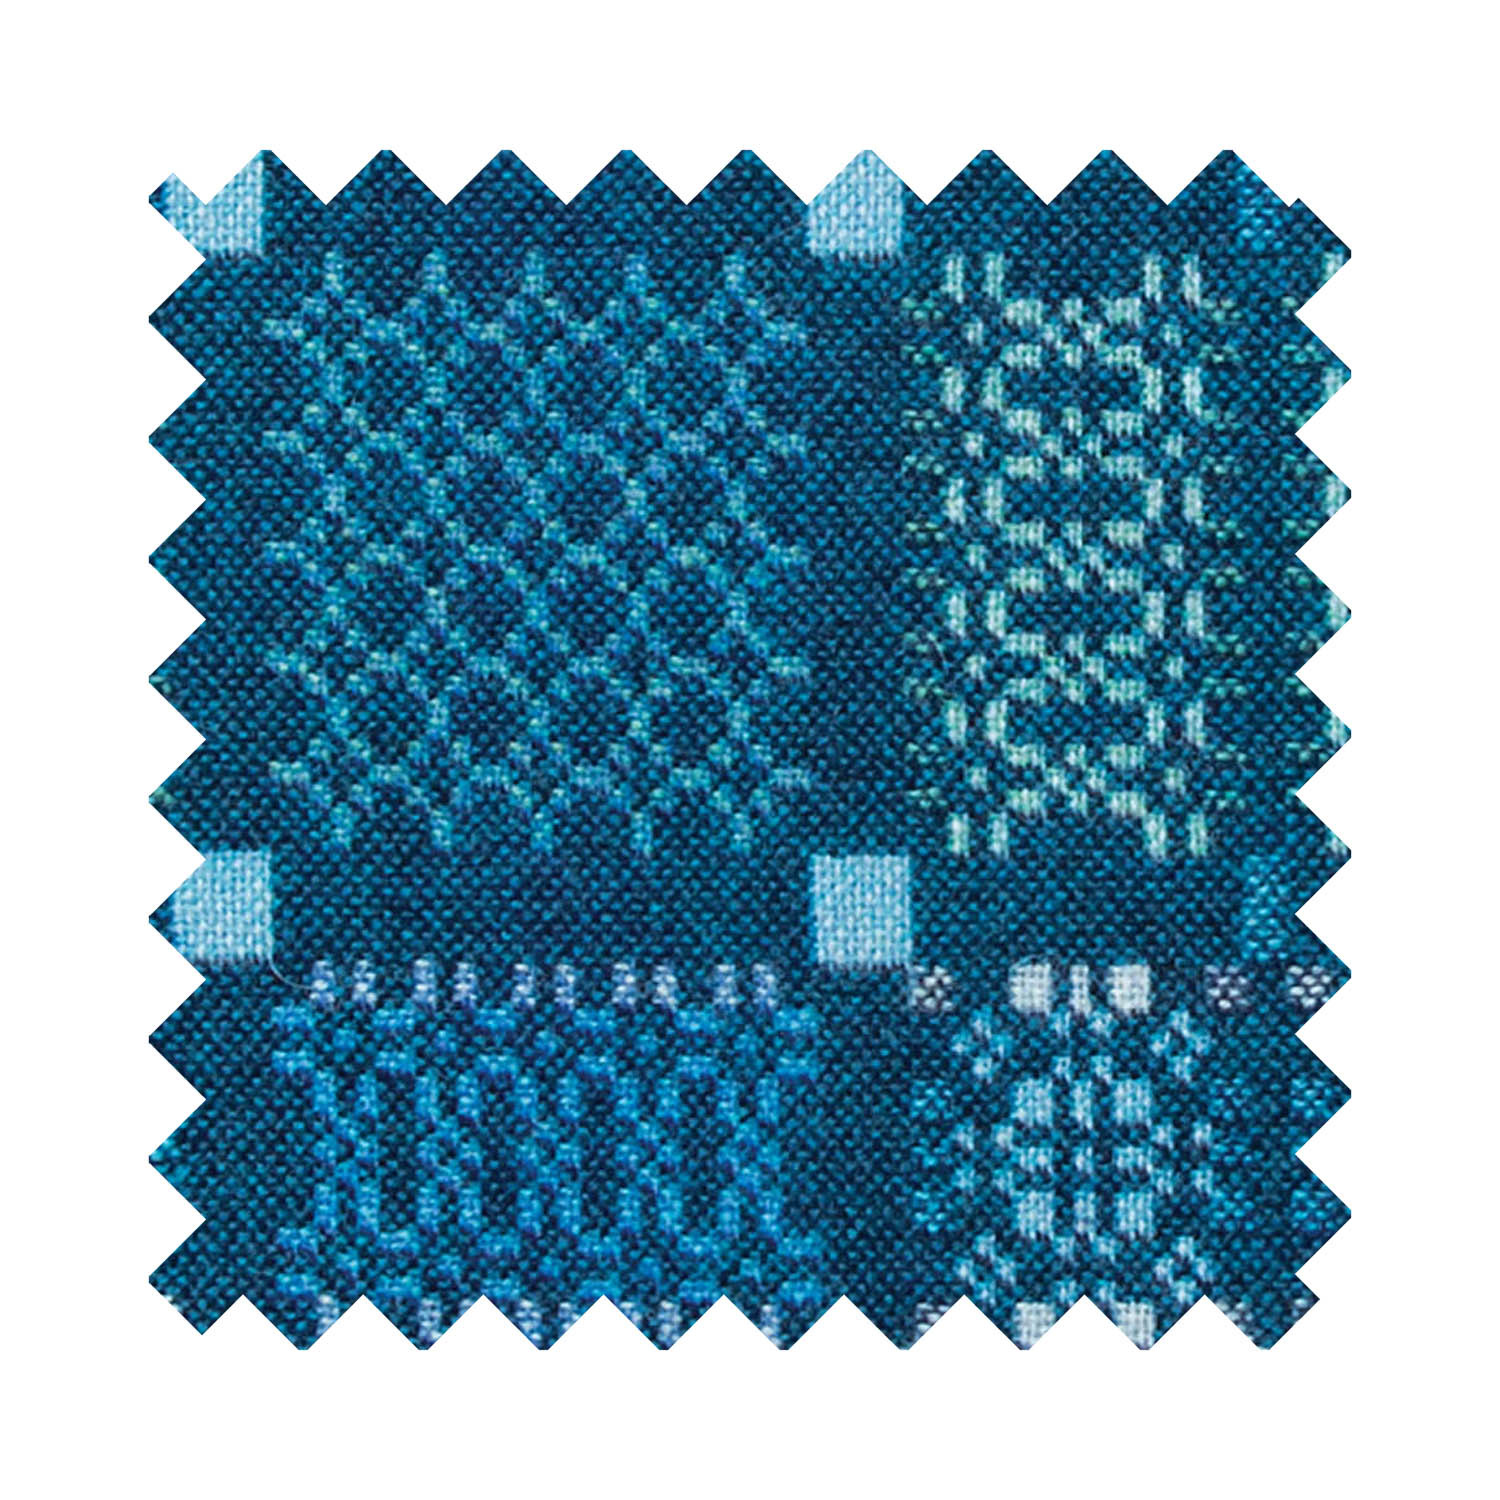 Knot Garden Lagoon Sample Swatch